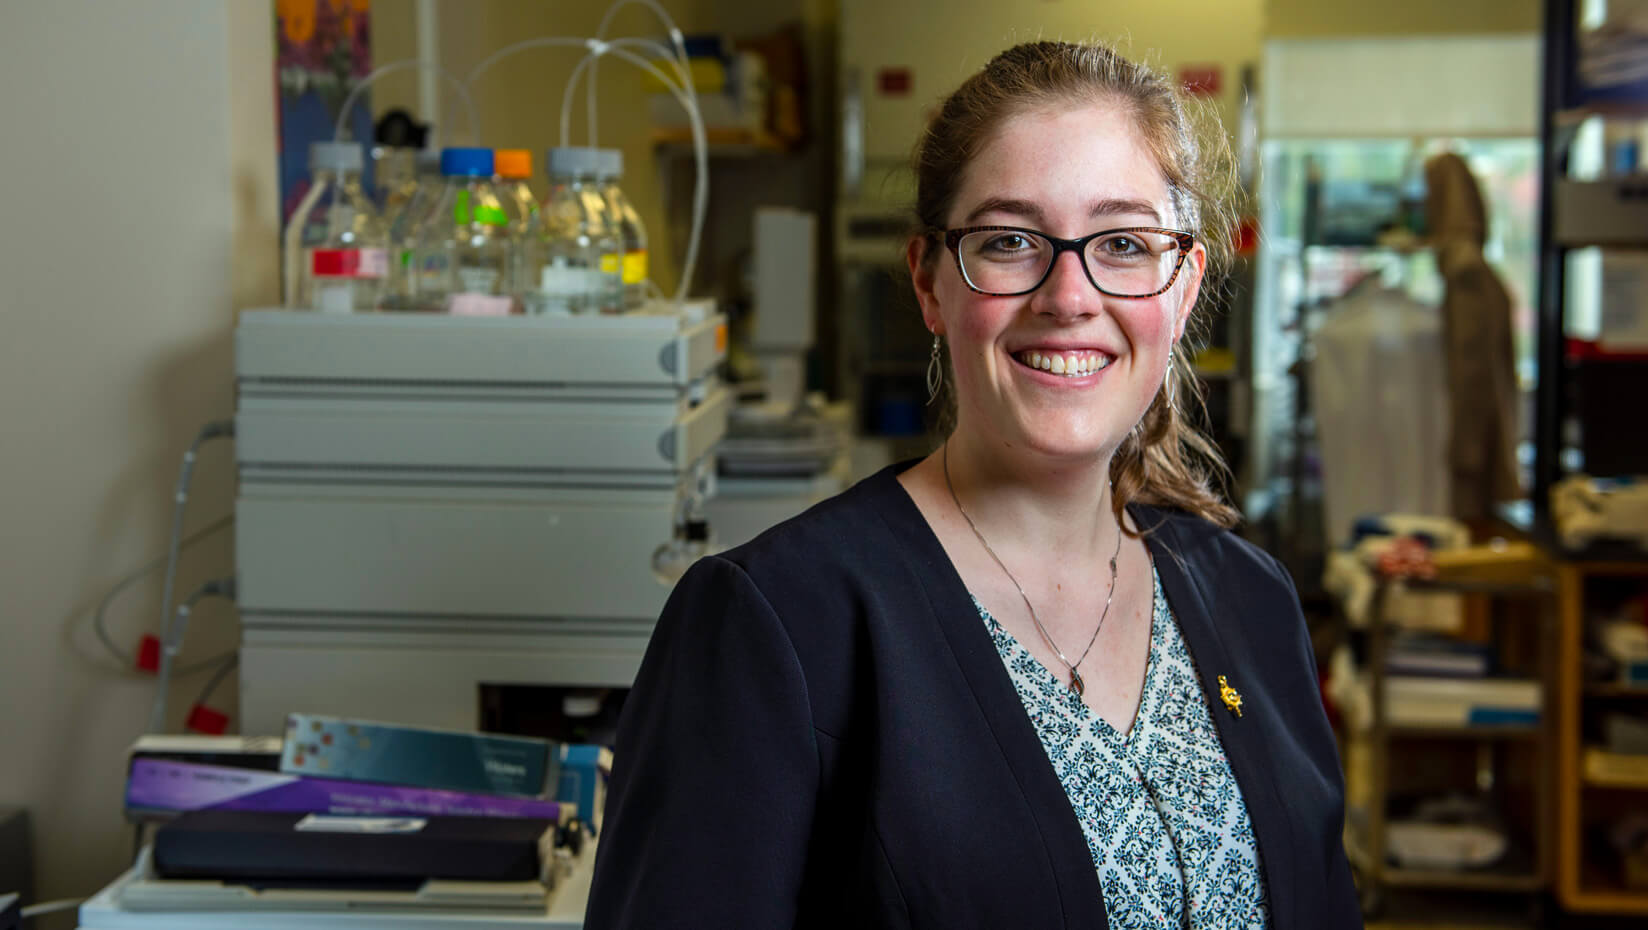 umaine food science student lab Danielle St-Pierre